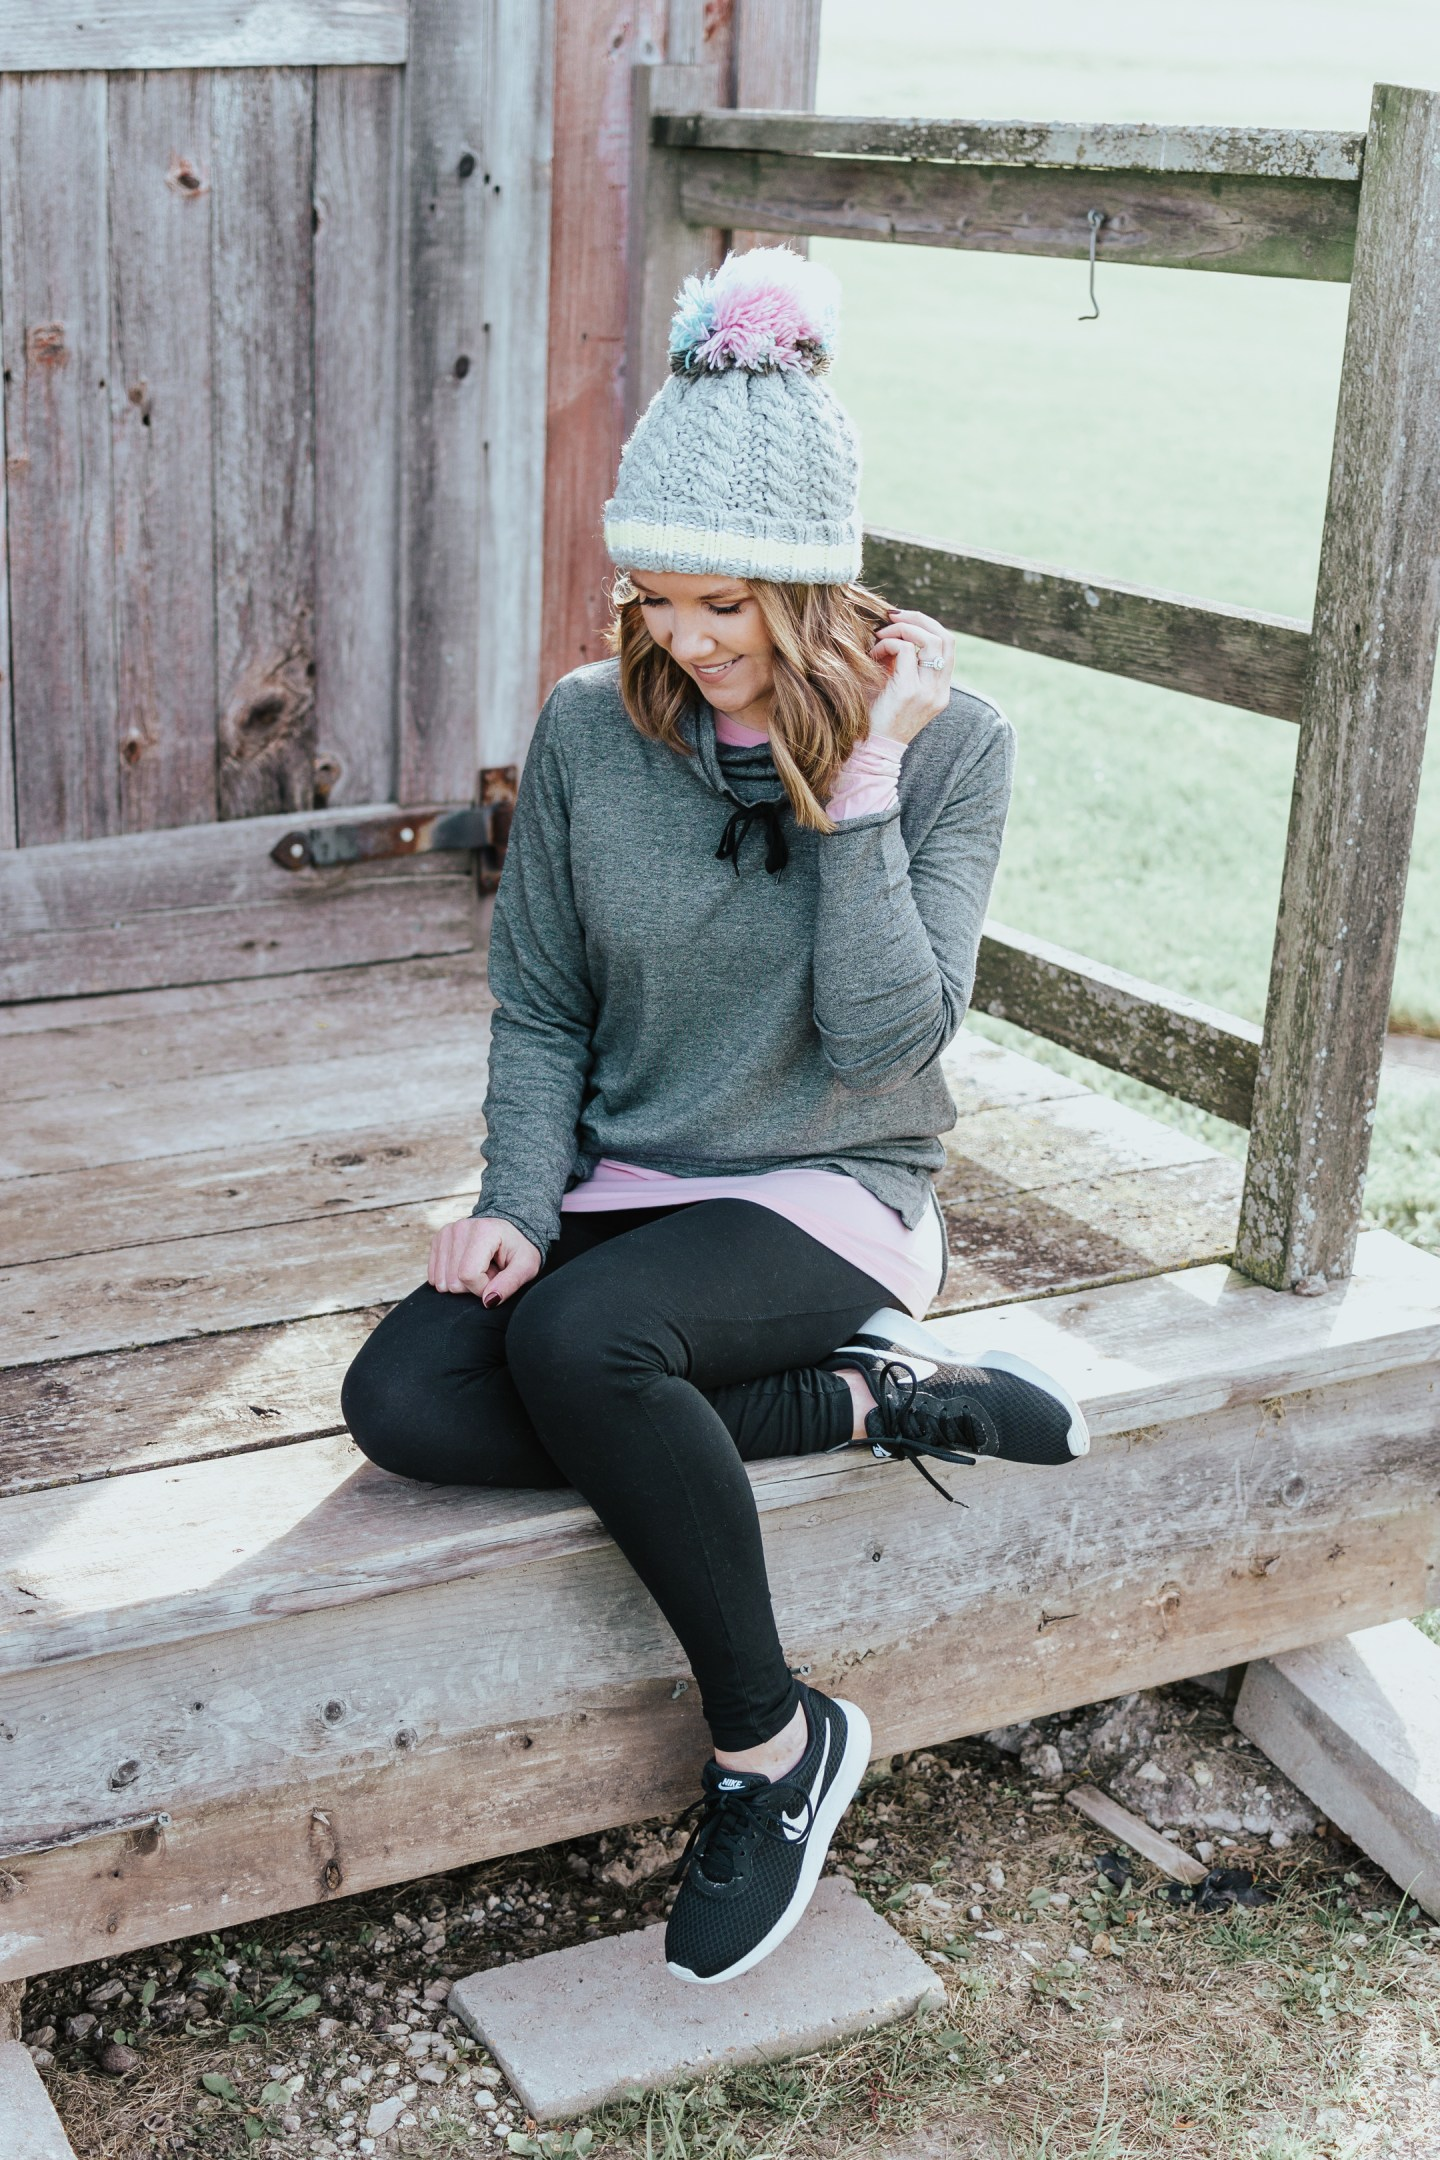 Functional and Stylish layering pieces, Cuddl Duds at Kohls, warm and stylish layering pieces for every occassion, how to style leggings for comfort, athleisure